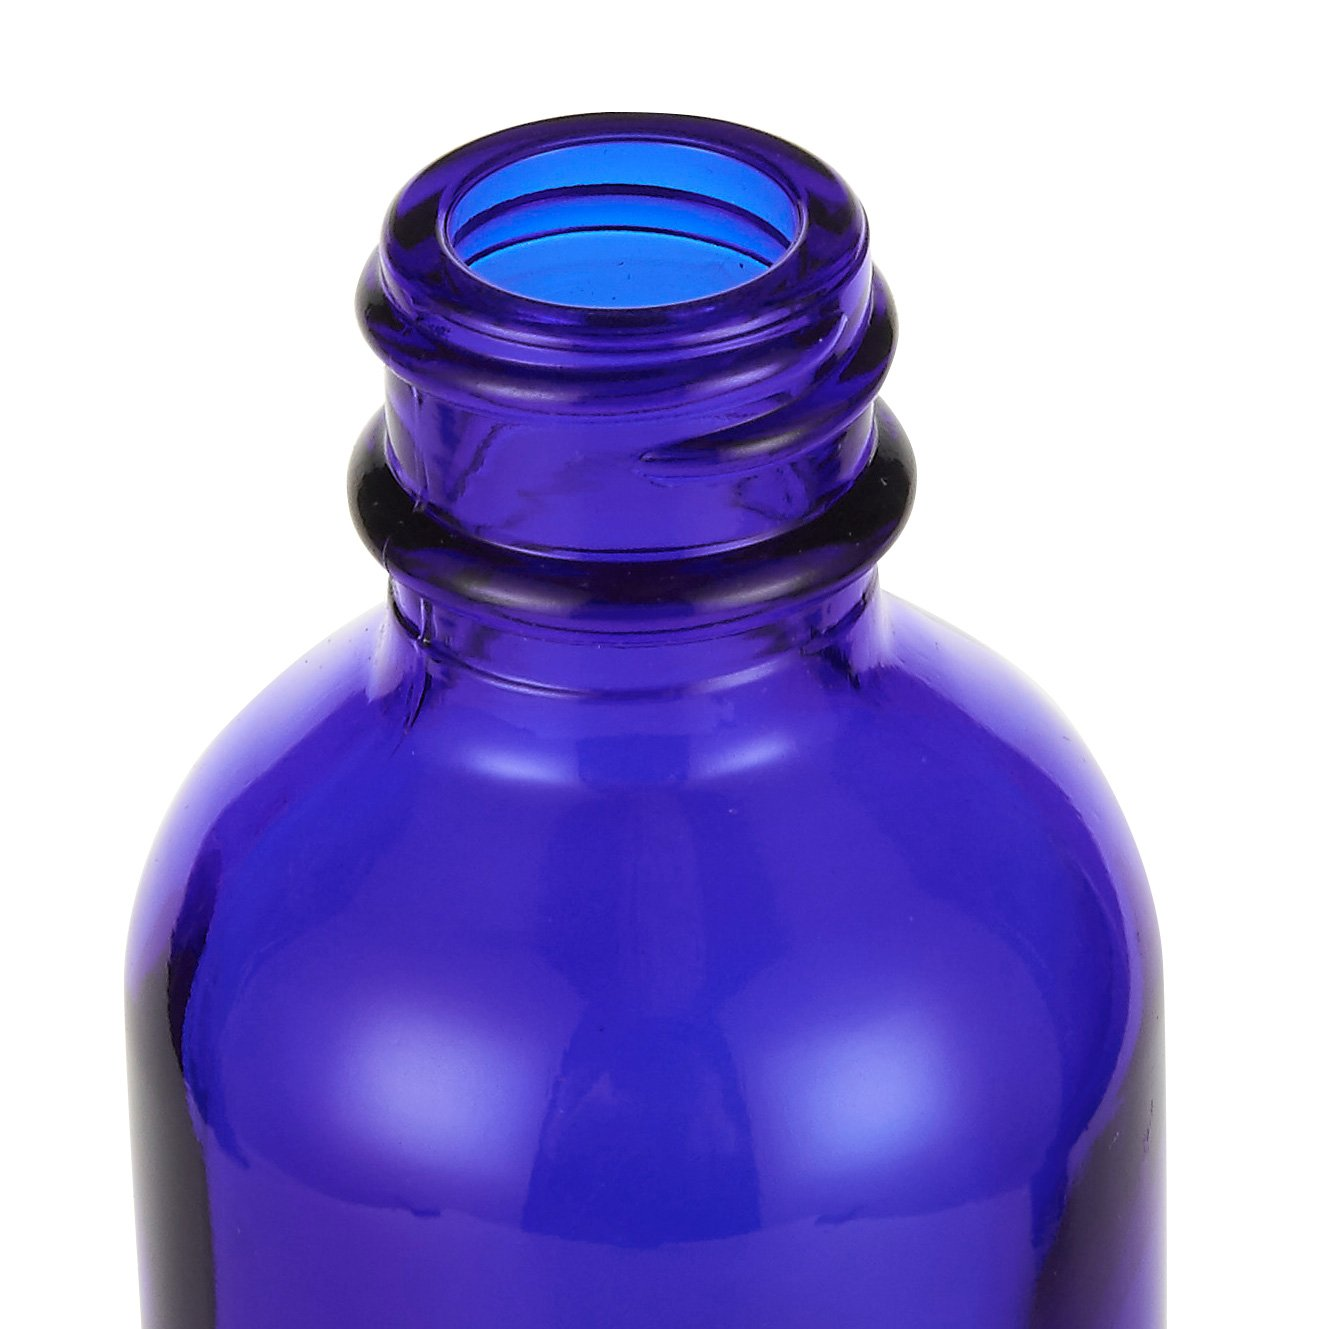 Misting Spray Glass Bottle - 12-Pack Fine Mist Bottles with Atomizer Pumps Sprayer and Cap - Refillable and Reusable Empty Glass Bottles for Essential Oils, Perfumes, Cleaners, Travel - Blue, 2 oz by Juvale (Image #3)